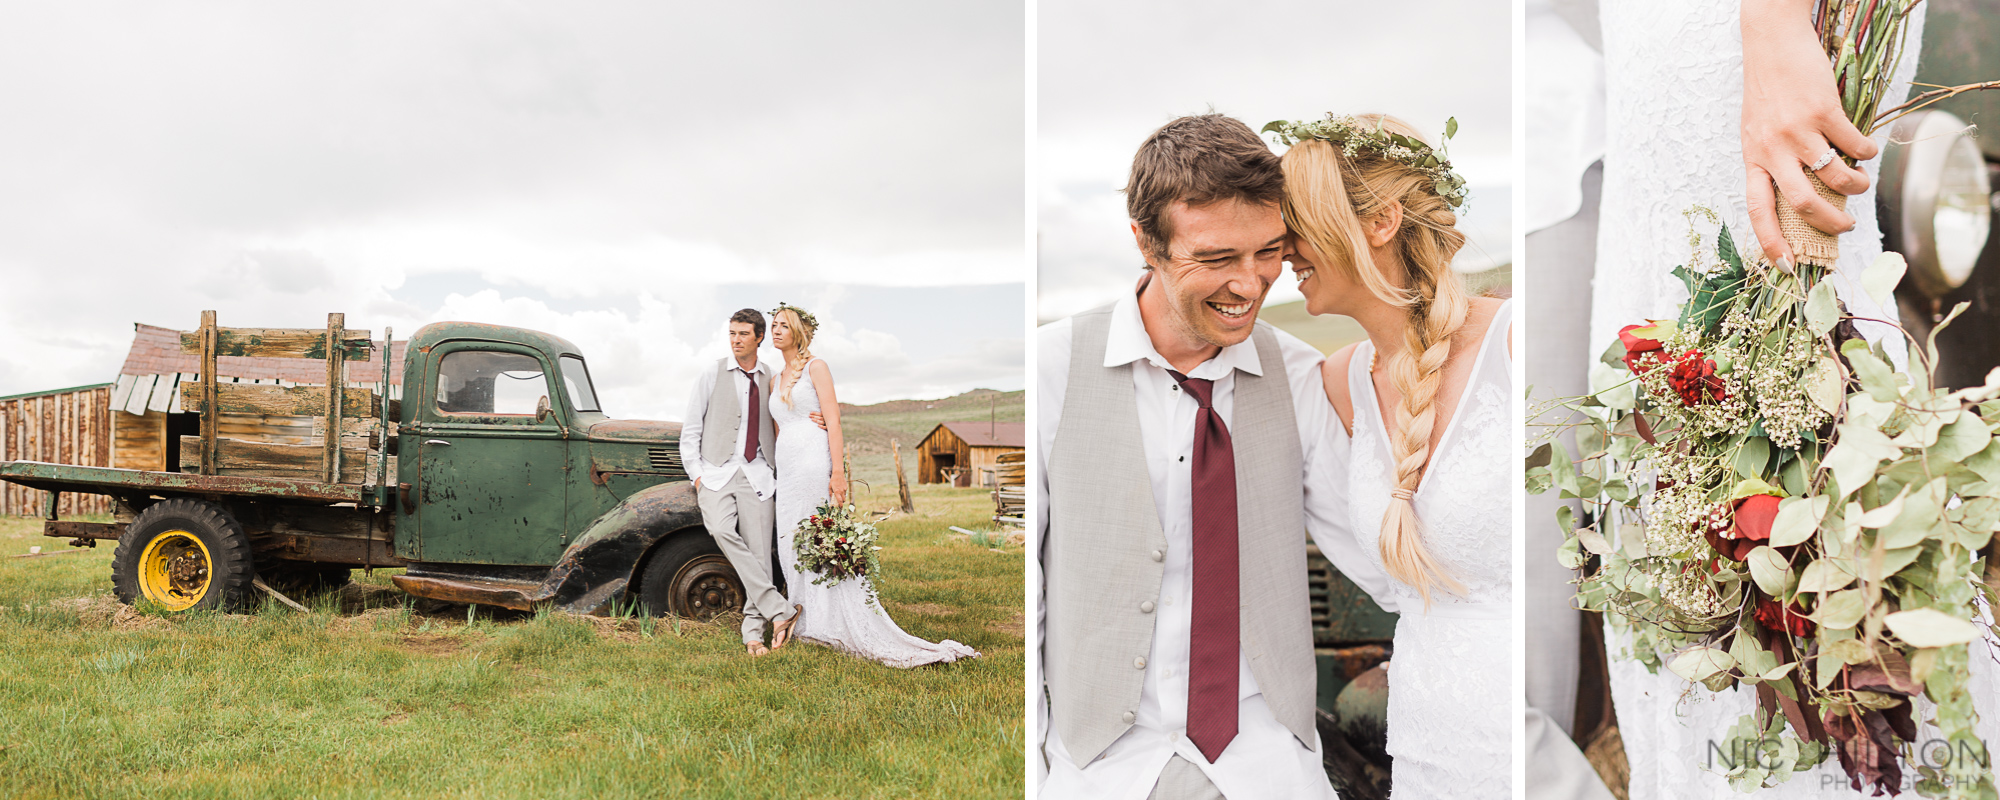 Bodie-Wedding-Photos.jpg